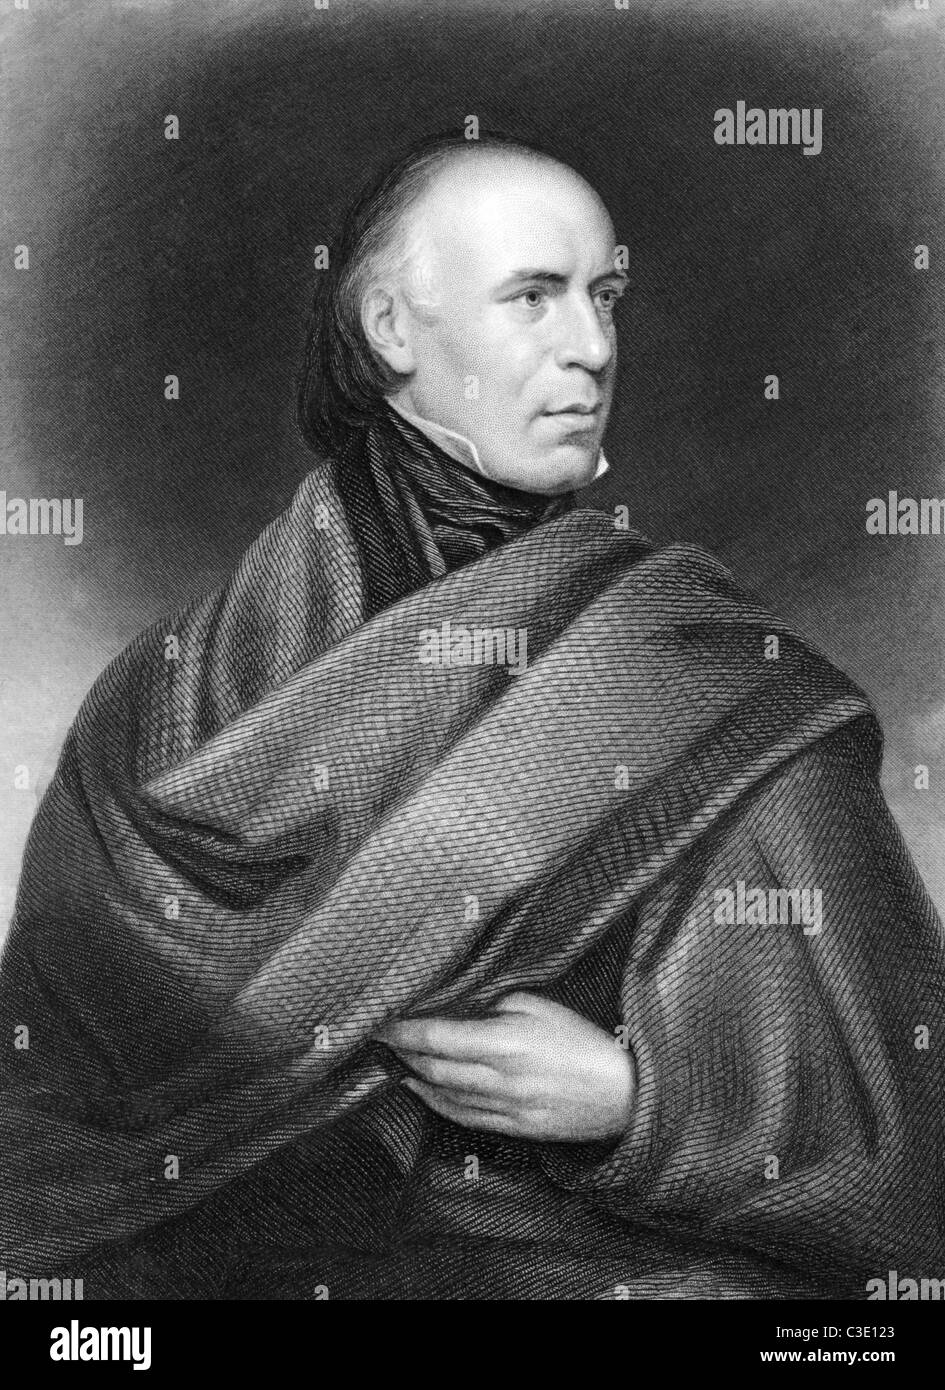 Allan Cunningham (1784-1842) on engraving from 1835. Scottish poet and author. Engraved by J.Thomson after a picture Stock Photo